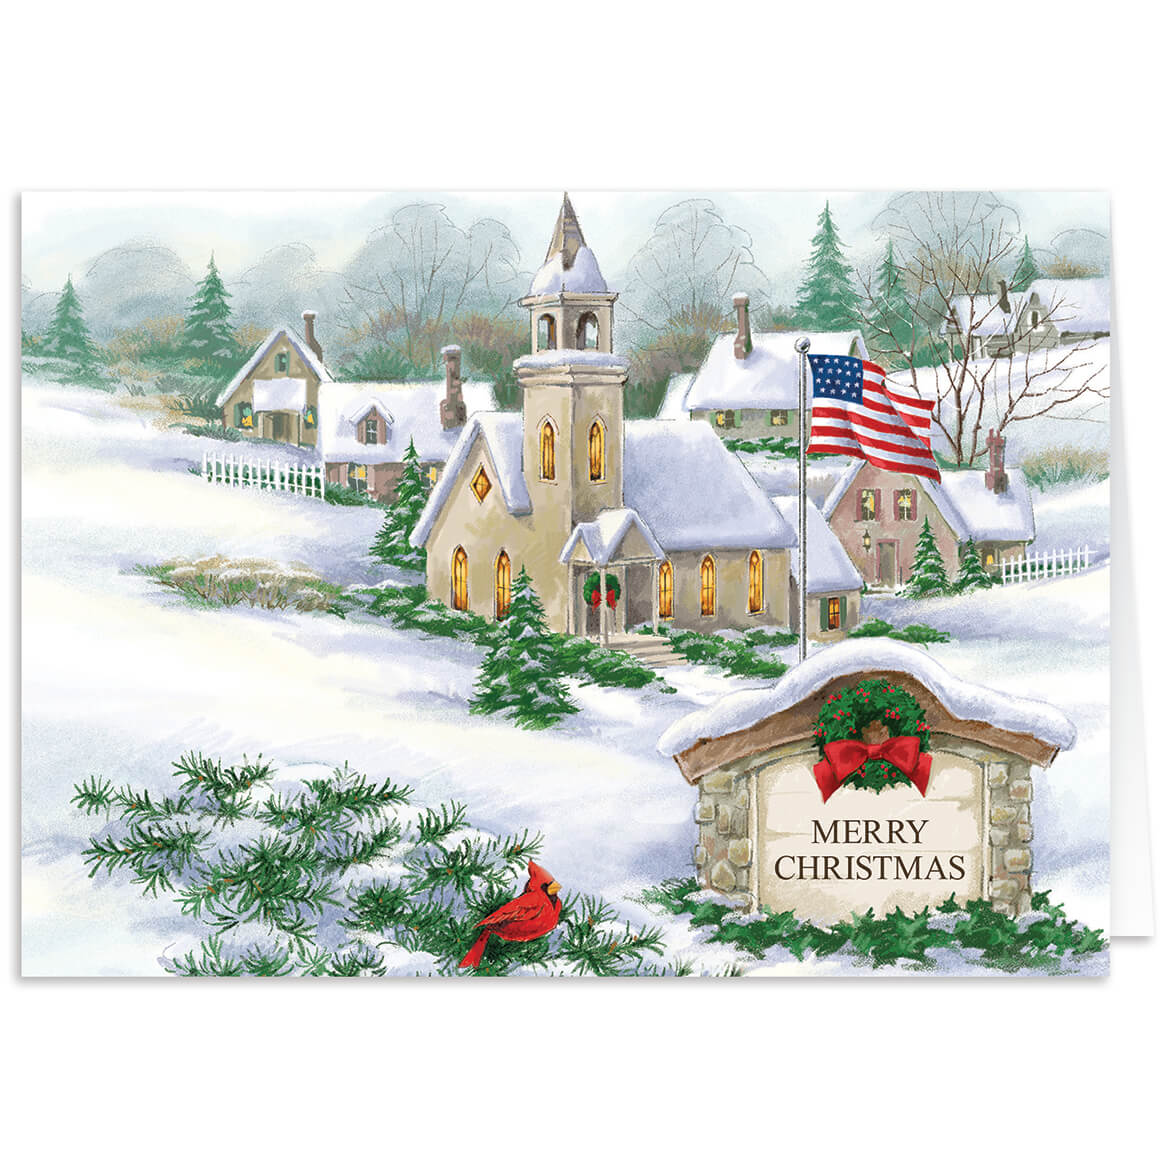 Personalized God Bless America Christmas Card Set of 20-300502